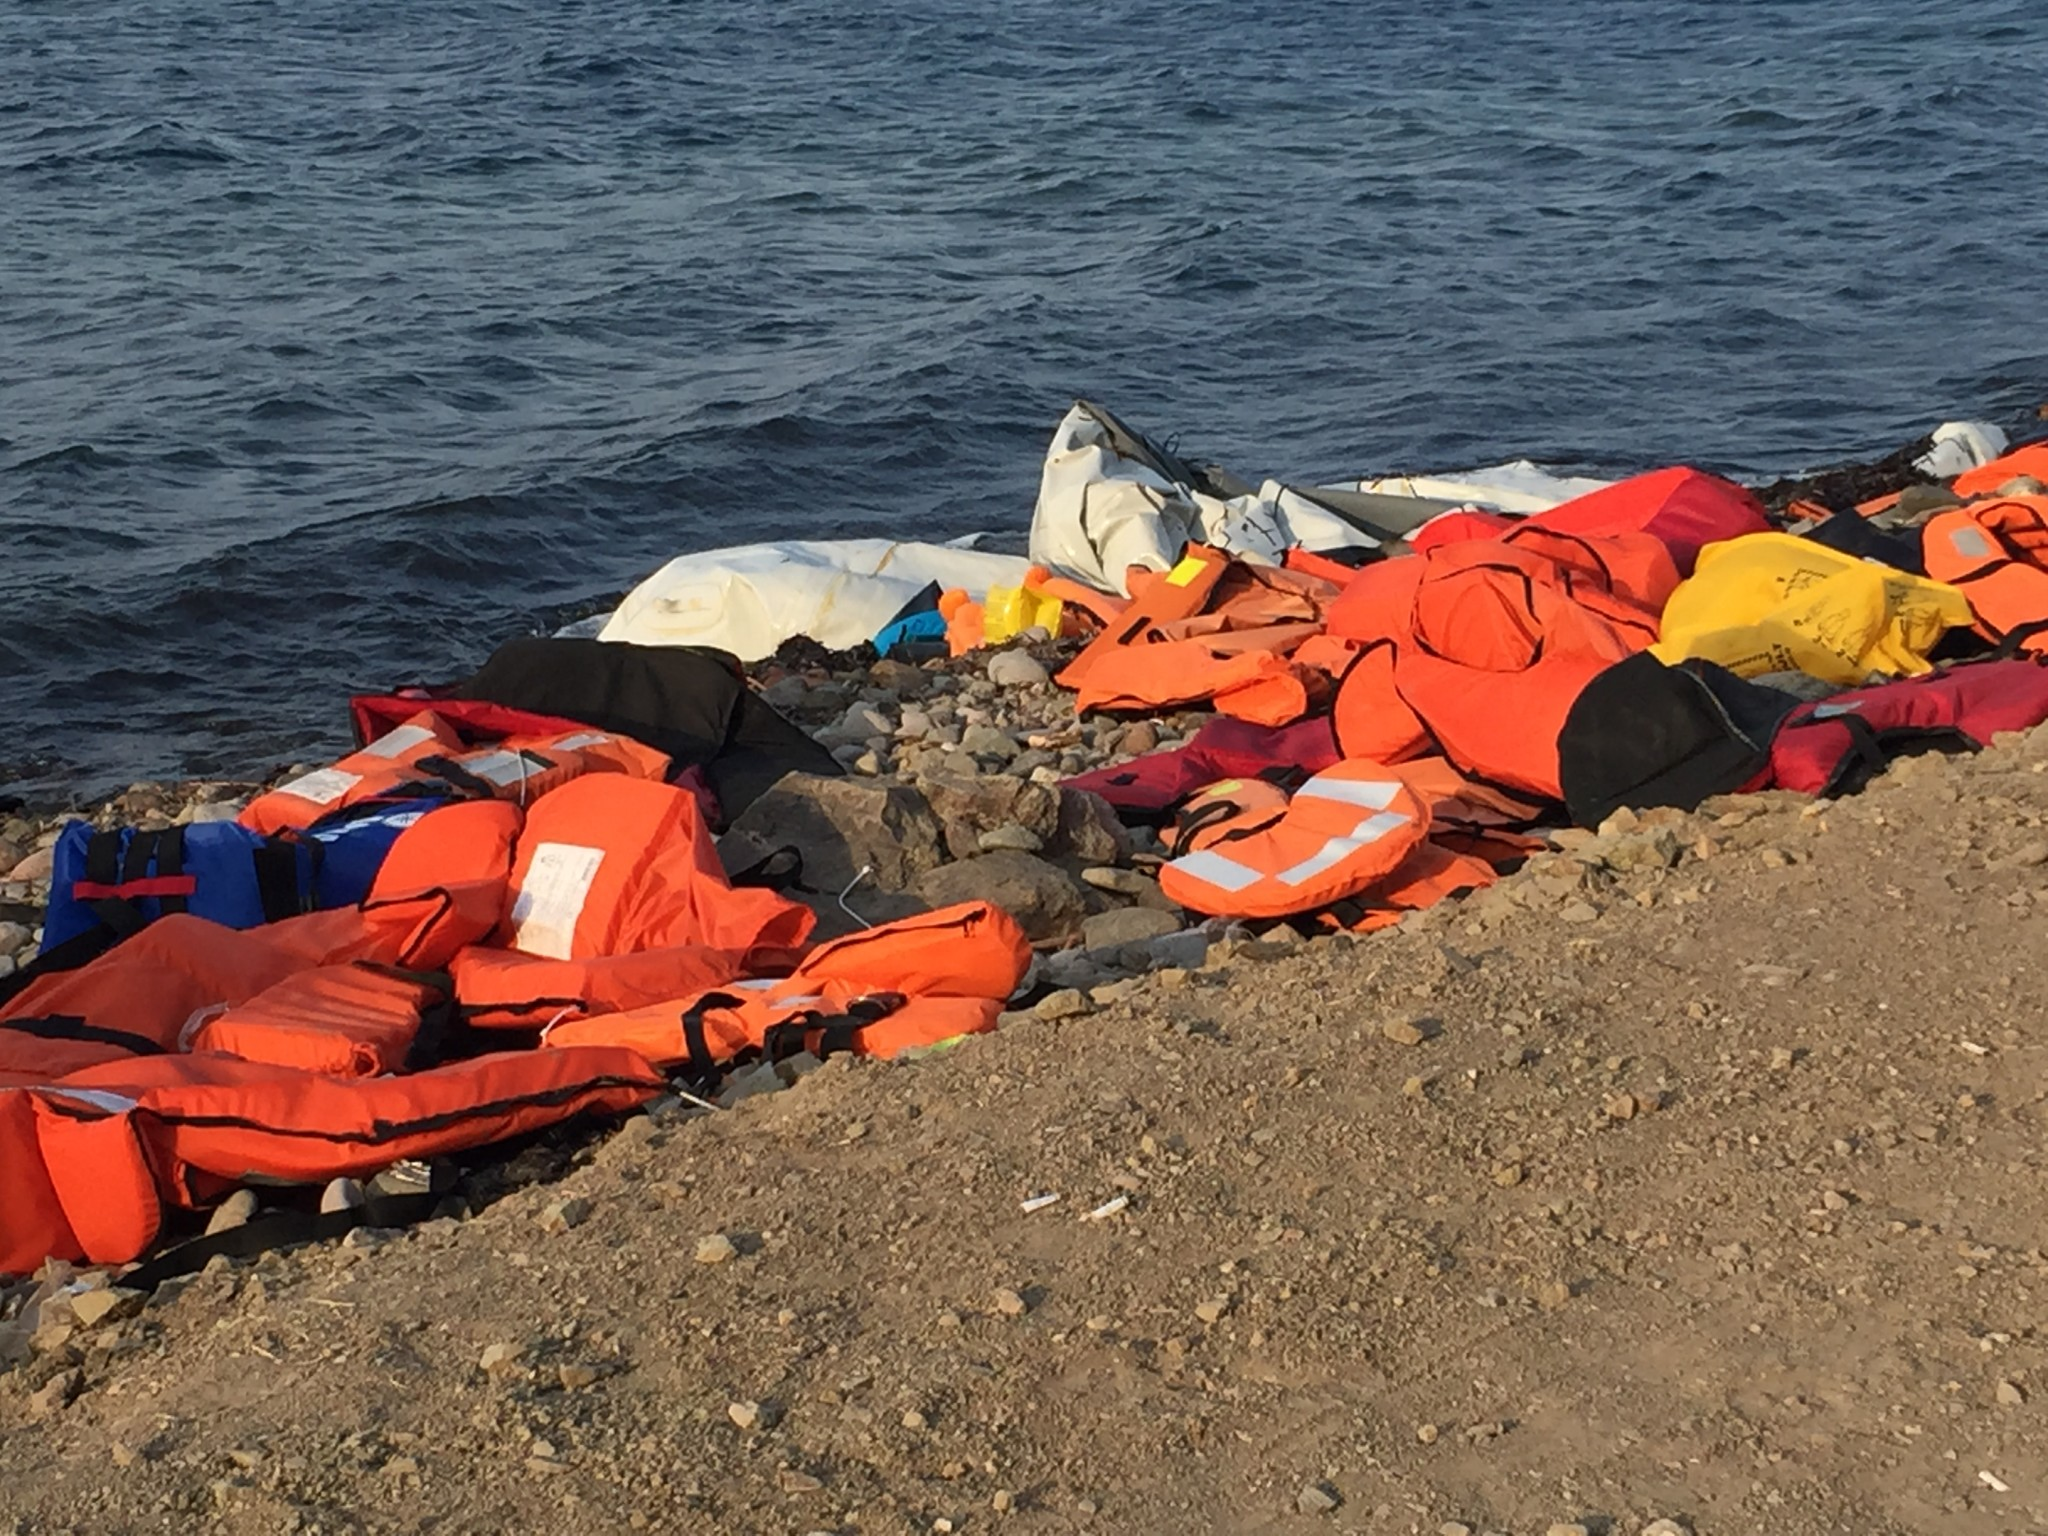 Protection deferred, protection denied? Report from Lesvos, Greece, European Union